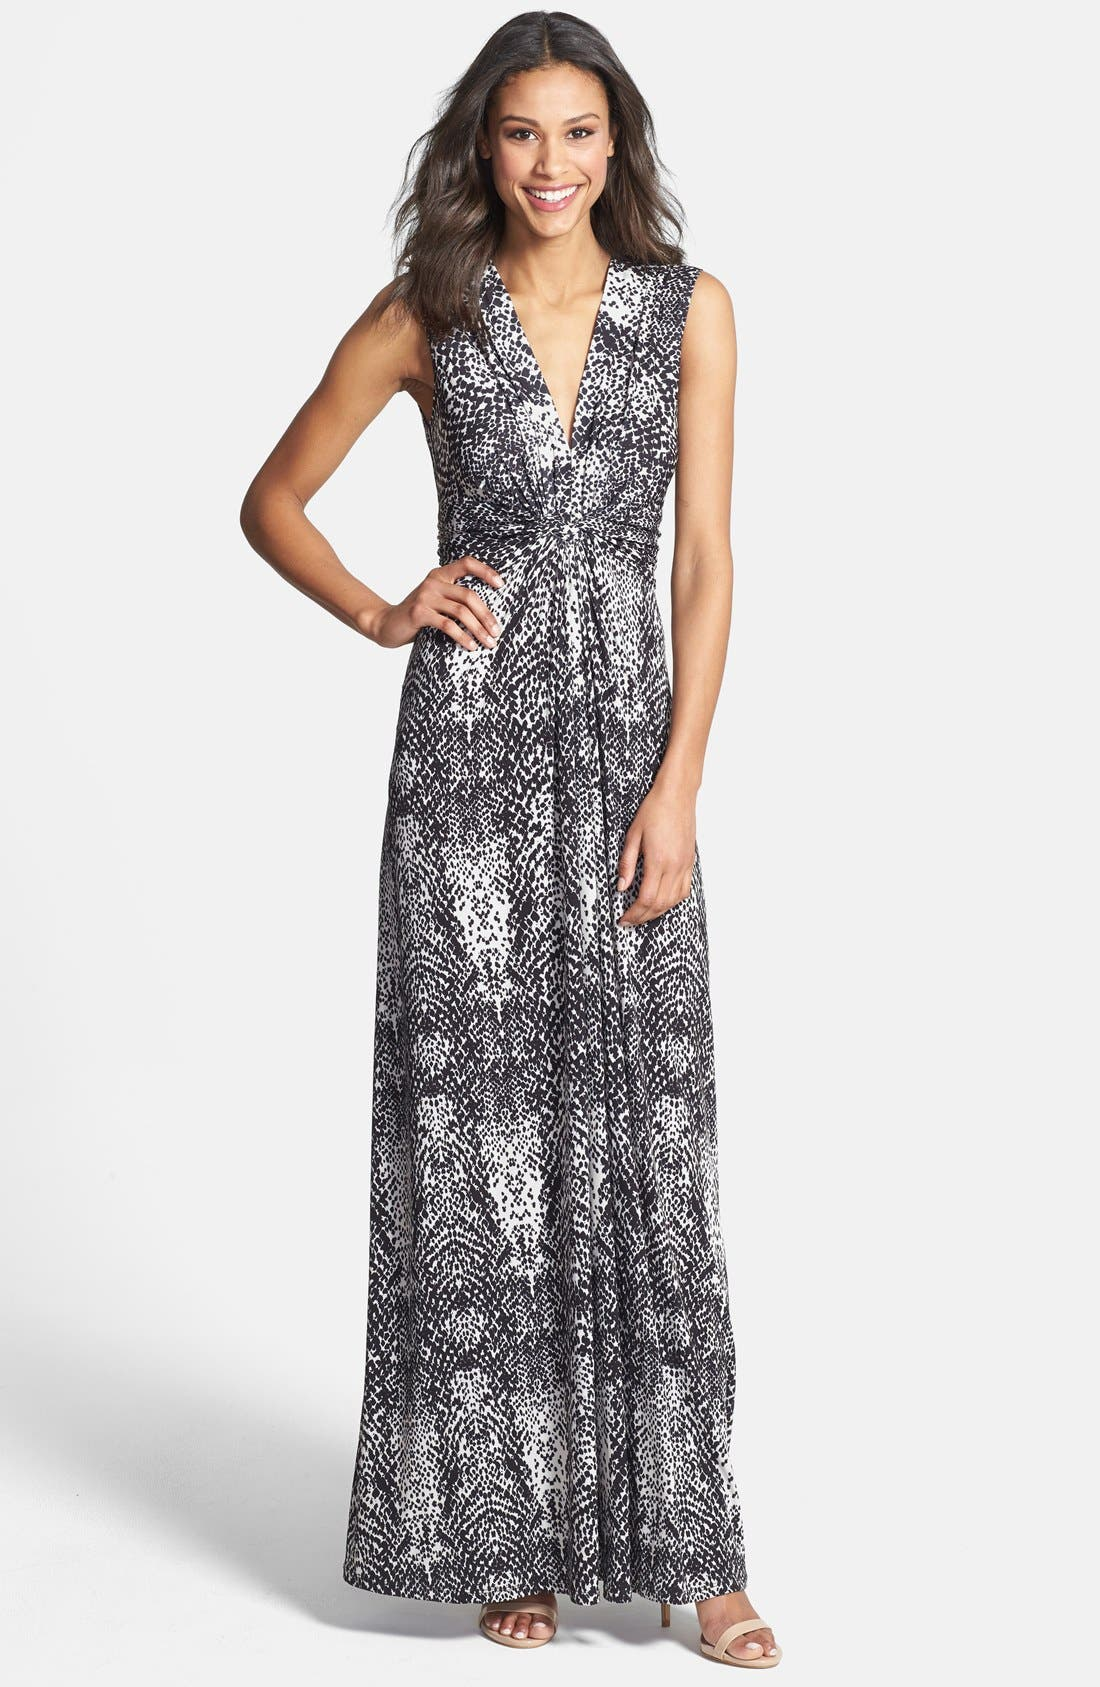 Alternate Image 1 Selected - Eliza J Print Front Knot Jersey Maxi Dress